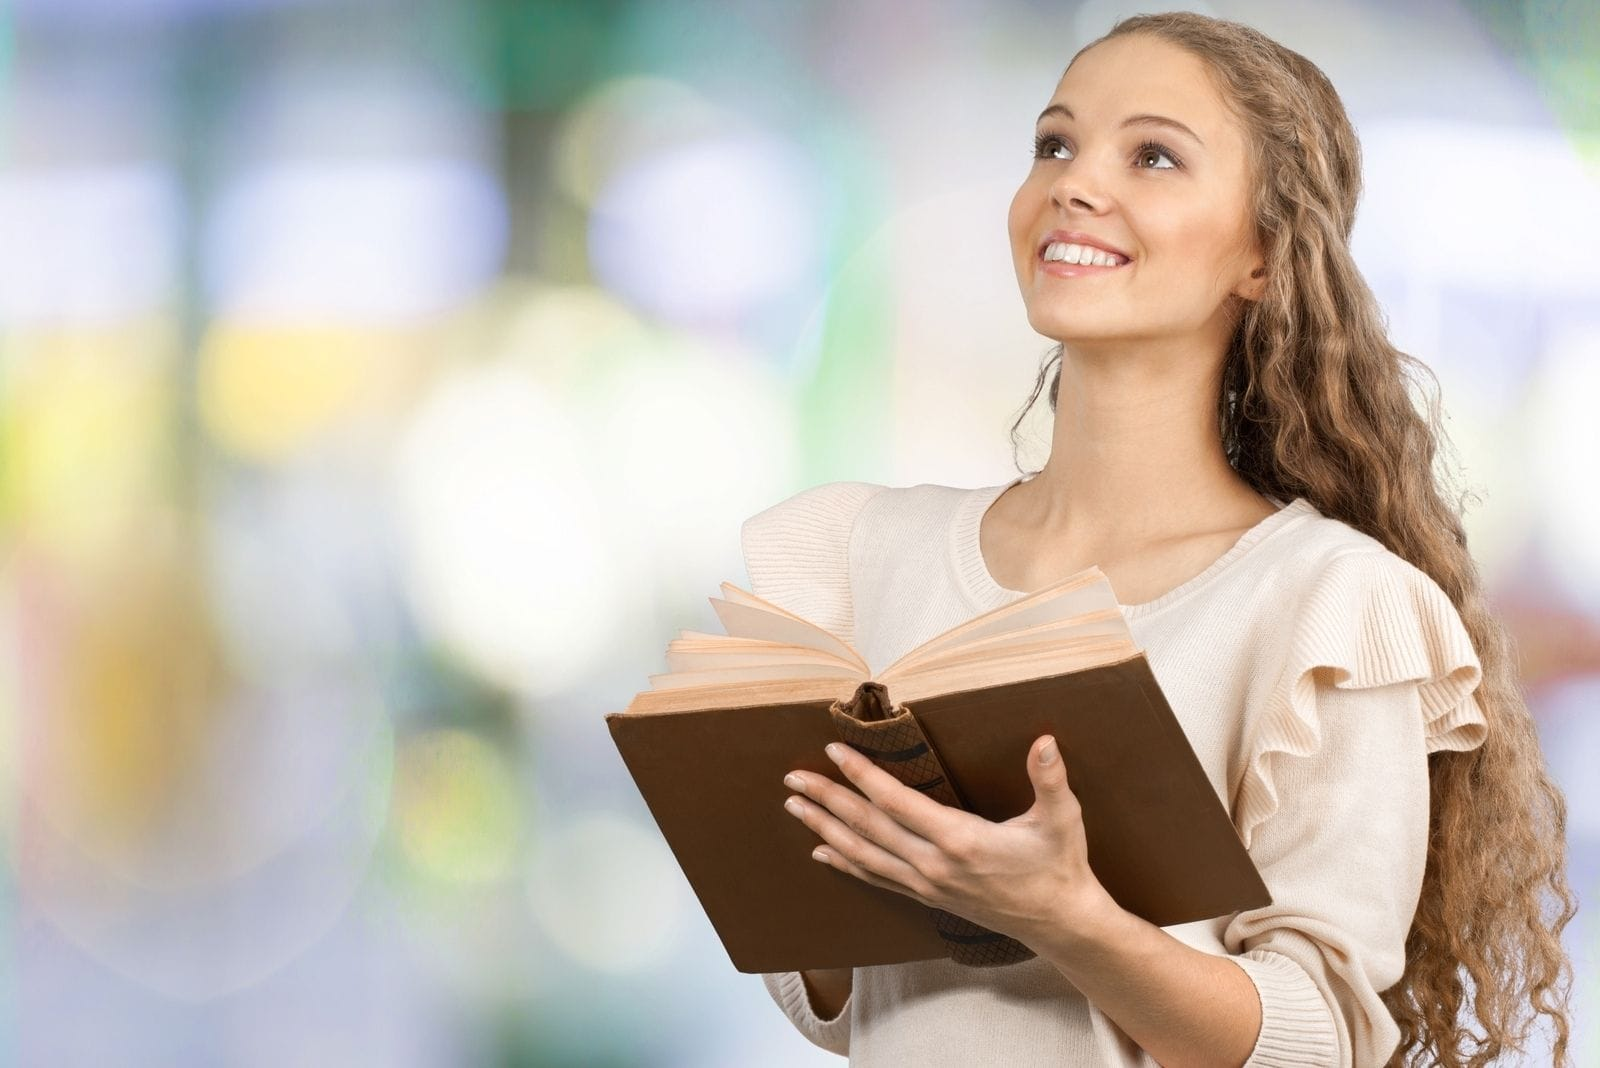 bible and praying woman standing and smiling looking above with a blurred background